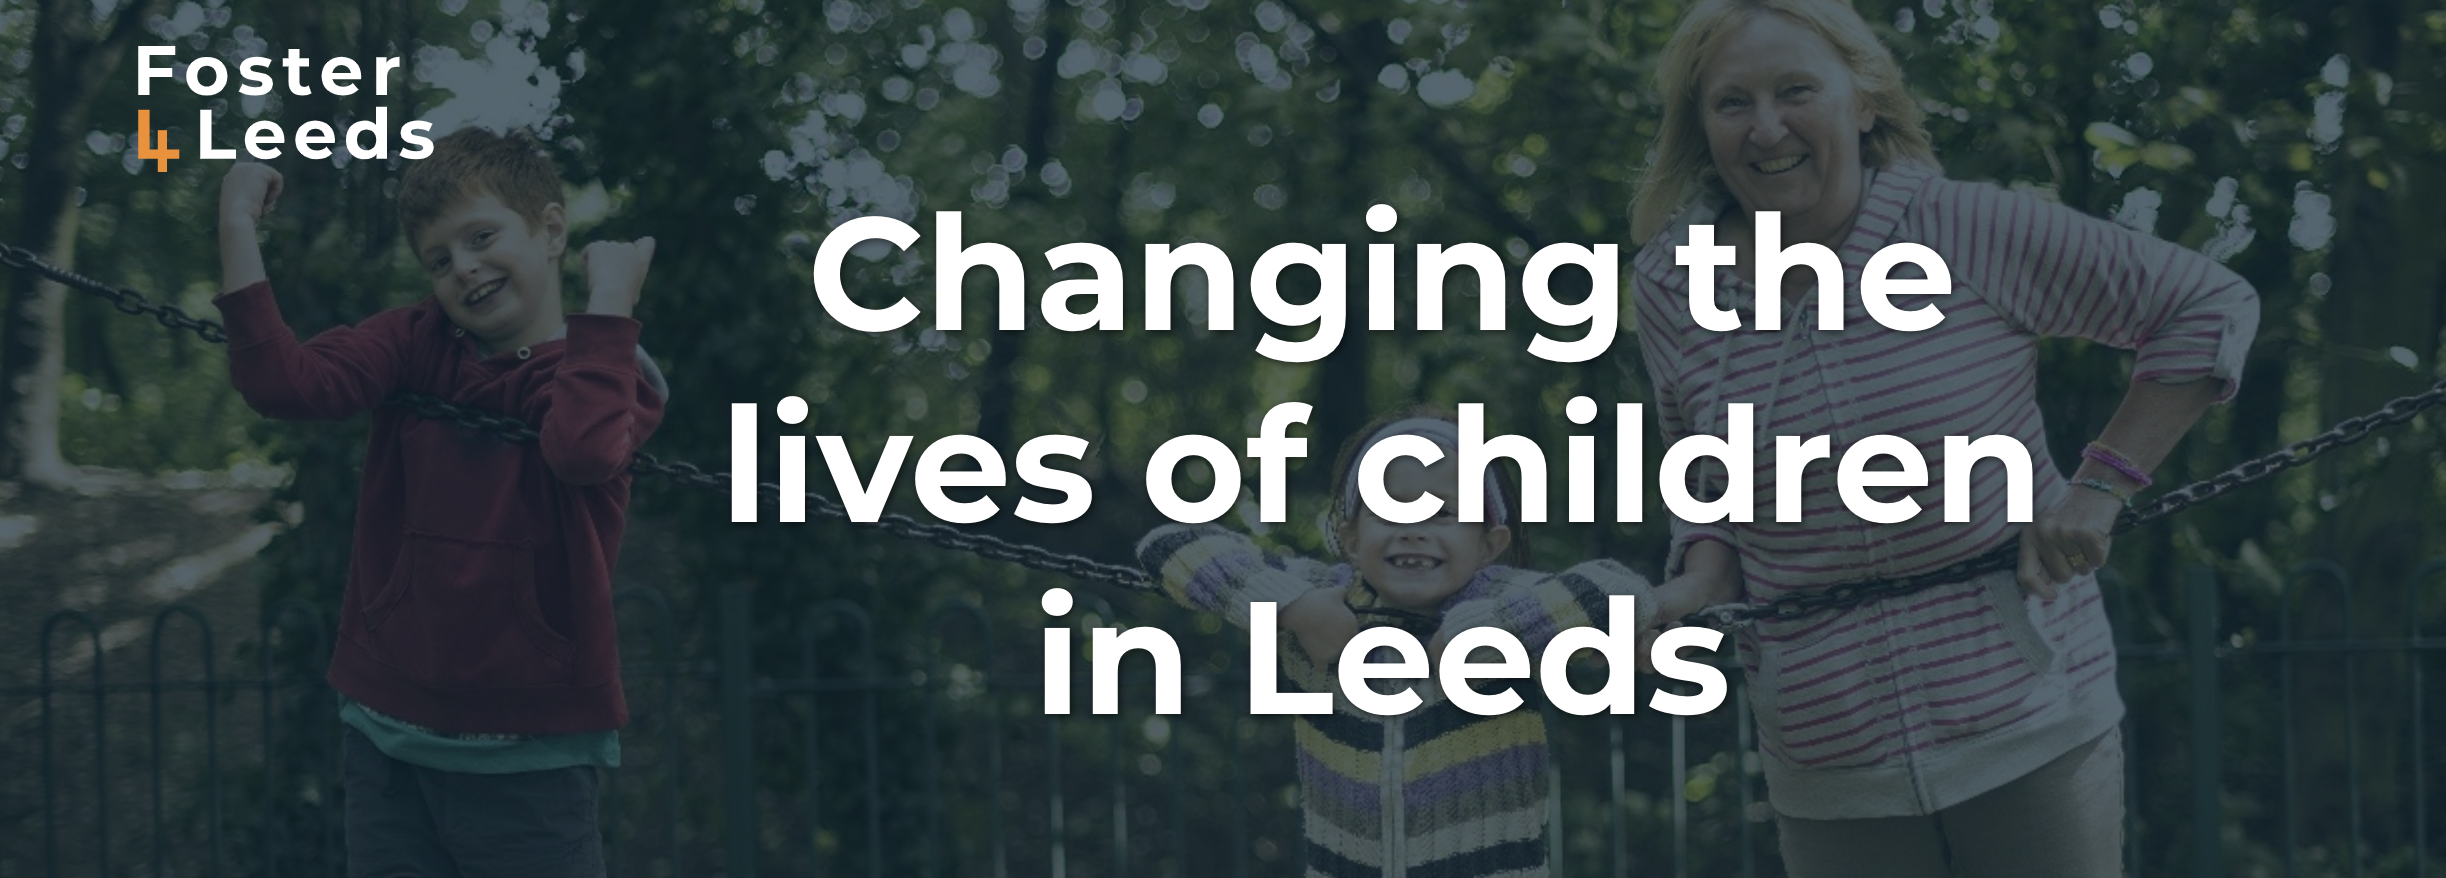 Changing the lives of children in leeds